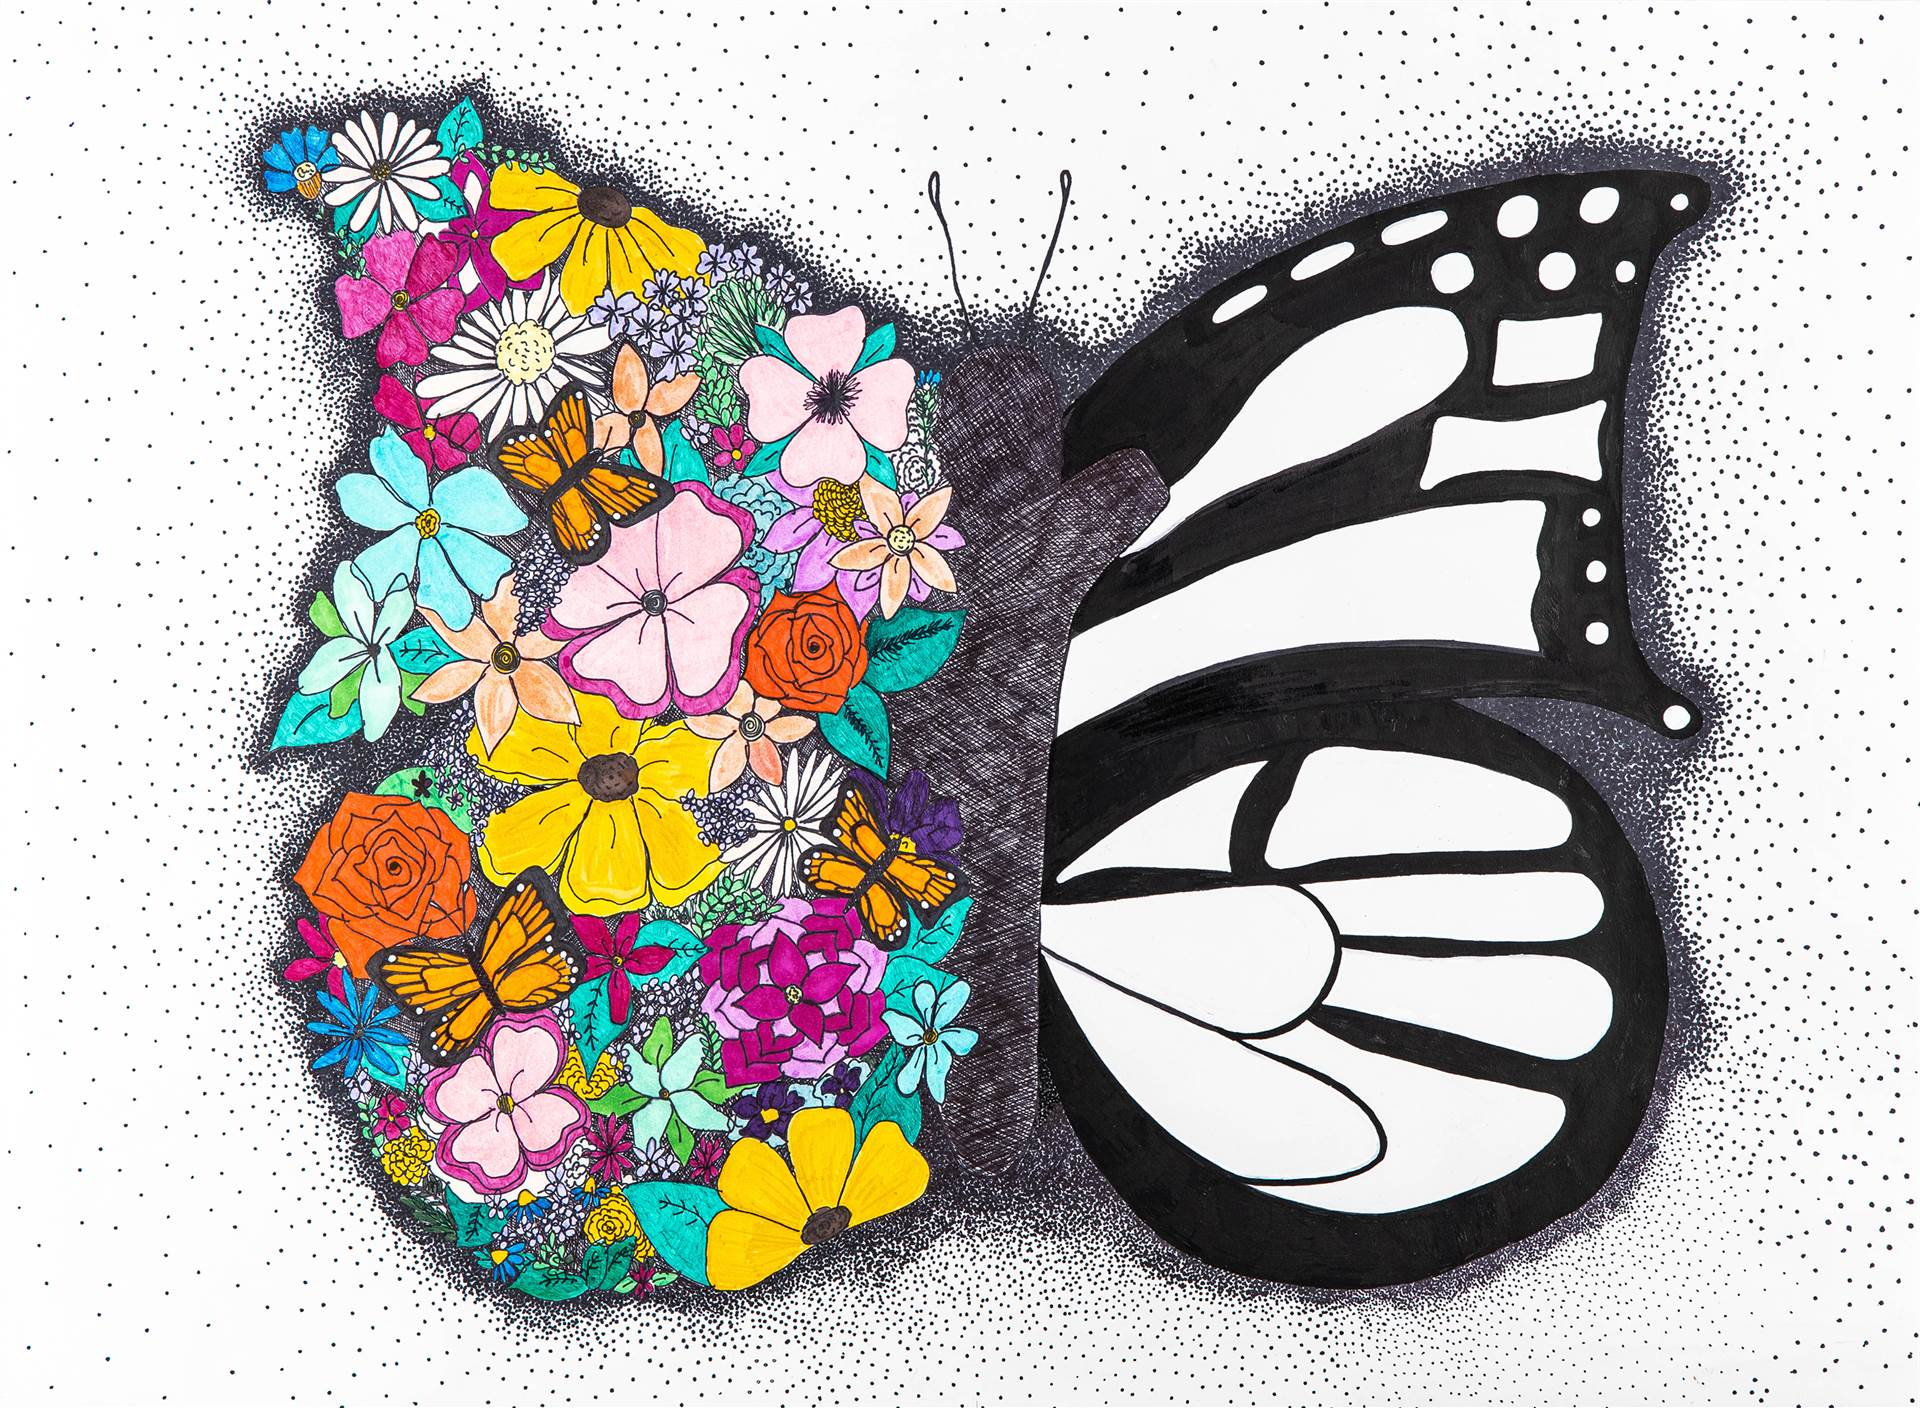 Butterfly drawing half black and white half colorred with fowers and other butterflies